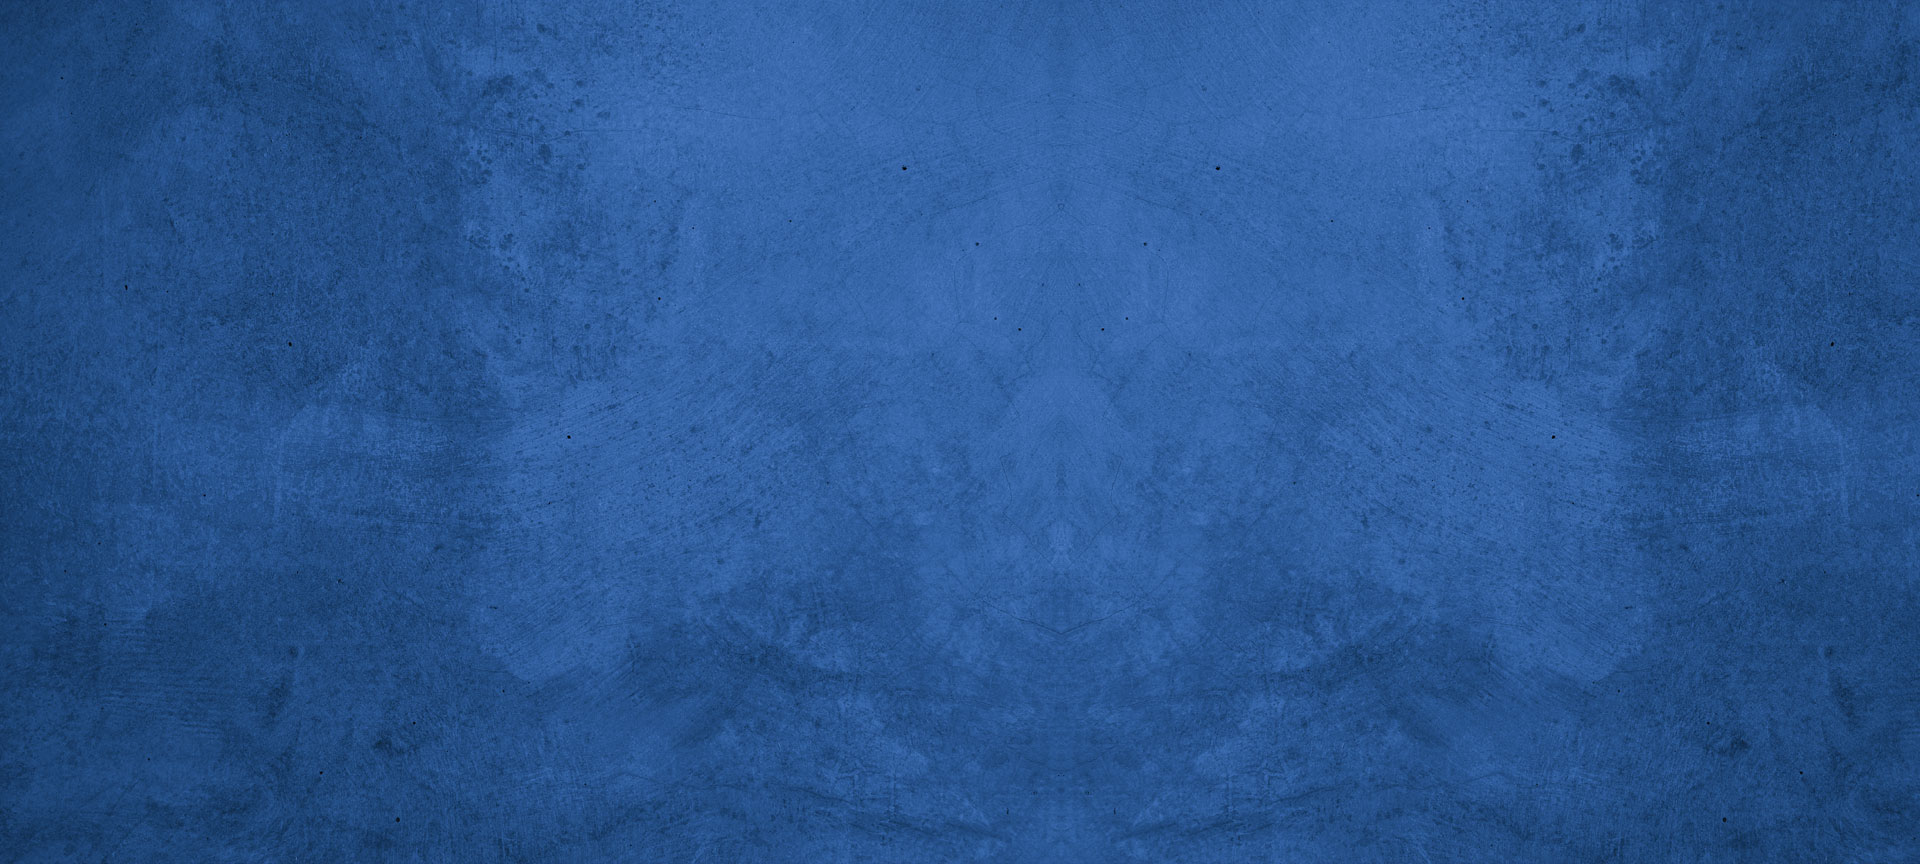 general blue background painted